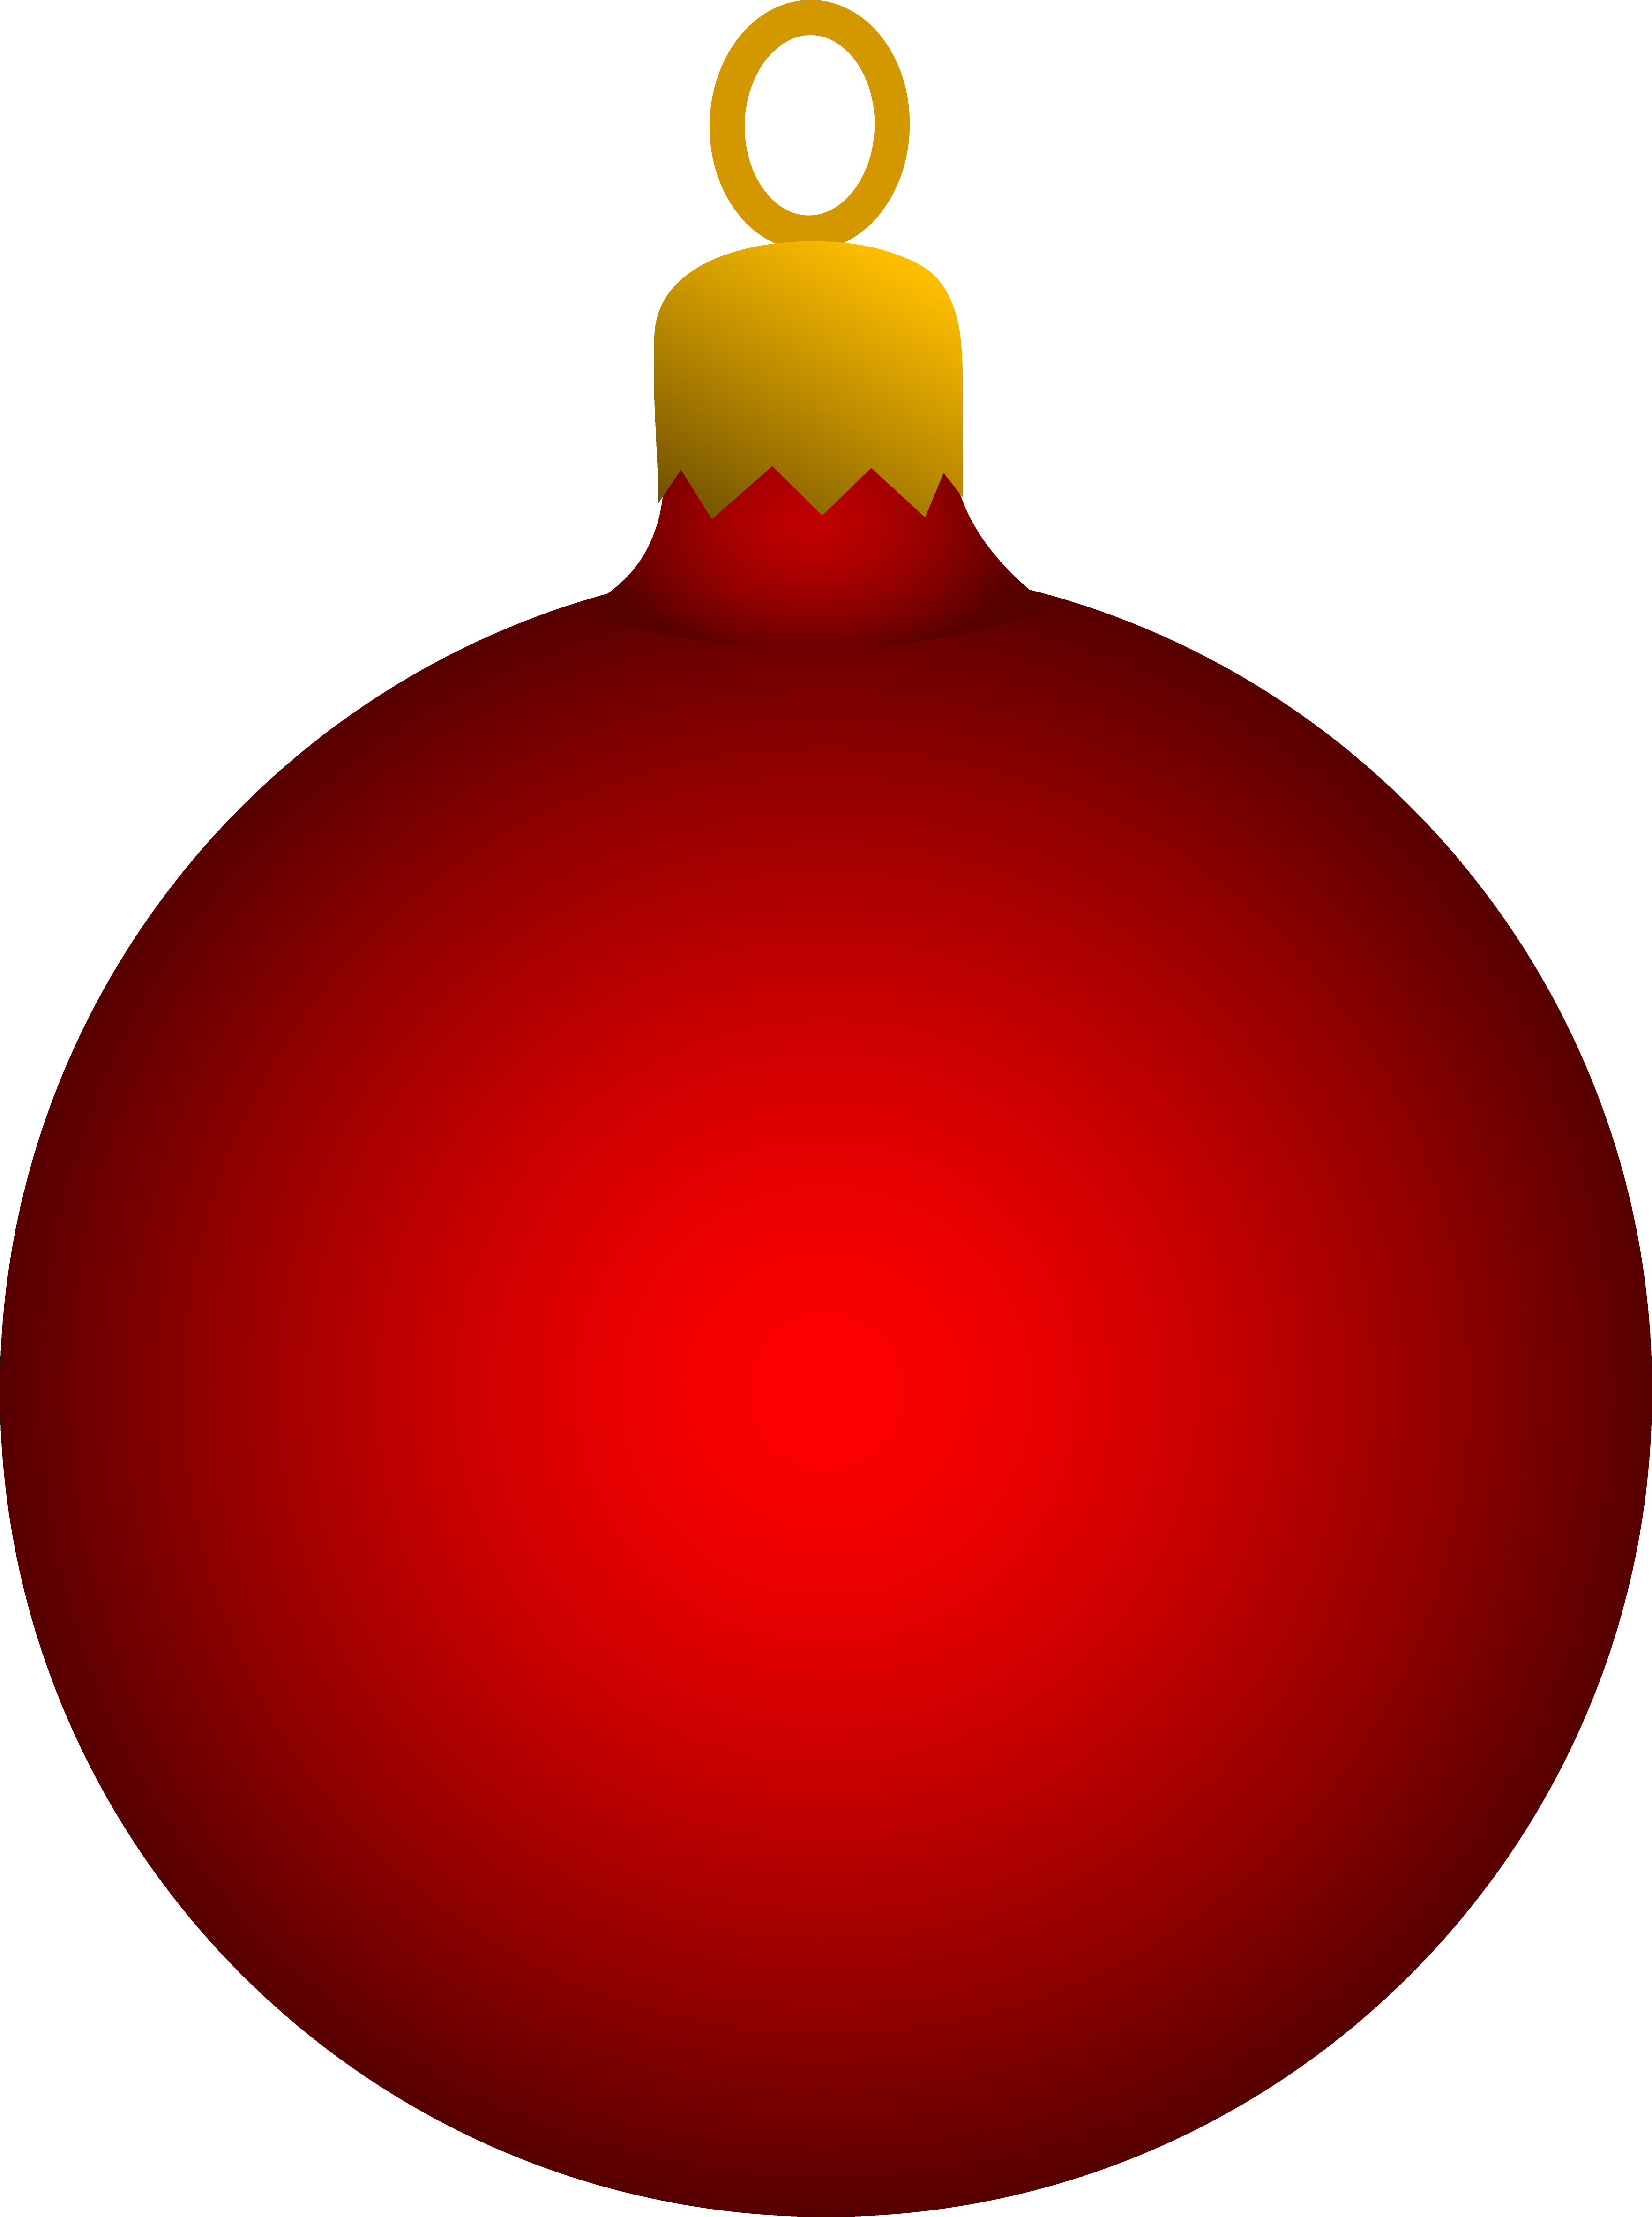 Christmas Lightbulb Clipart | Clipart Panda - Free Clipart Images